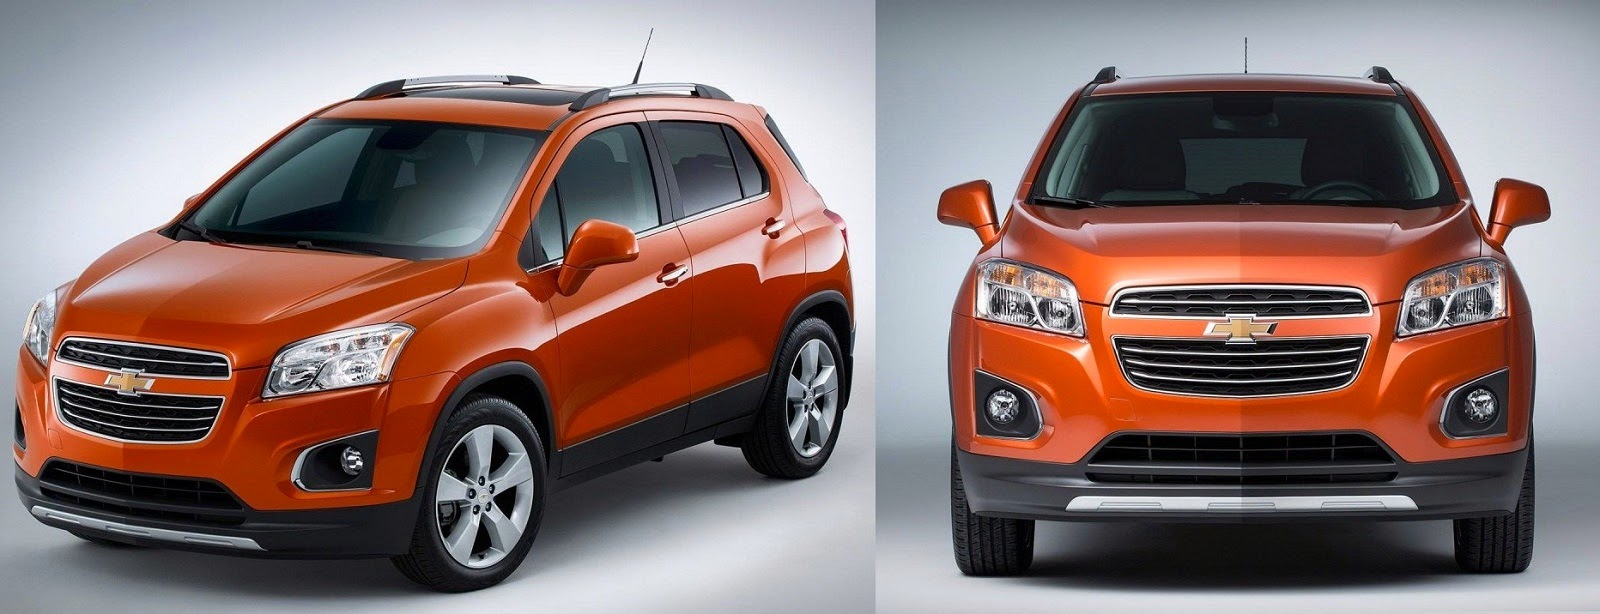 car reviews new car pictures for 2018 2019 small suv compact suv chevrolet trax 2015. Black Bedroom Furniture Sets. Home Design Ideas